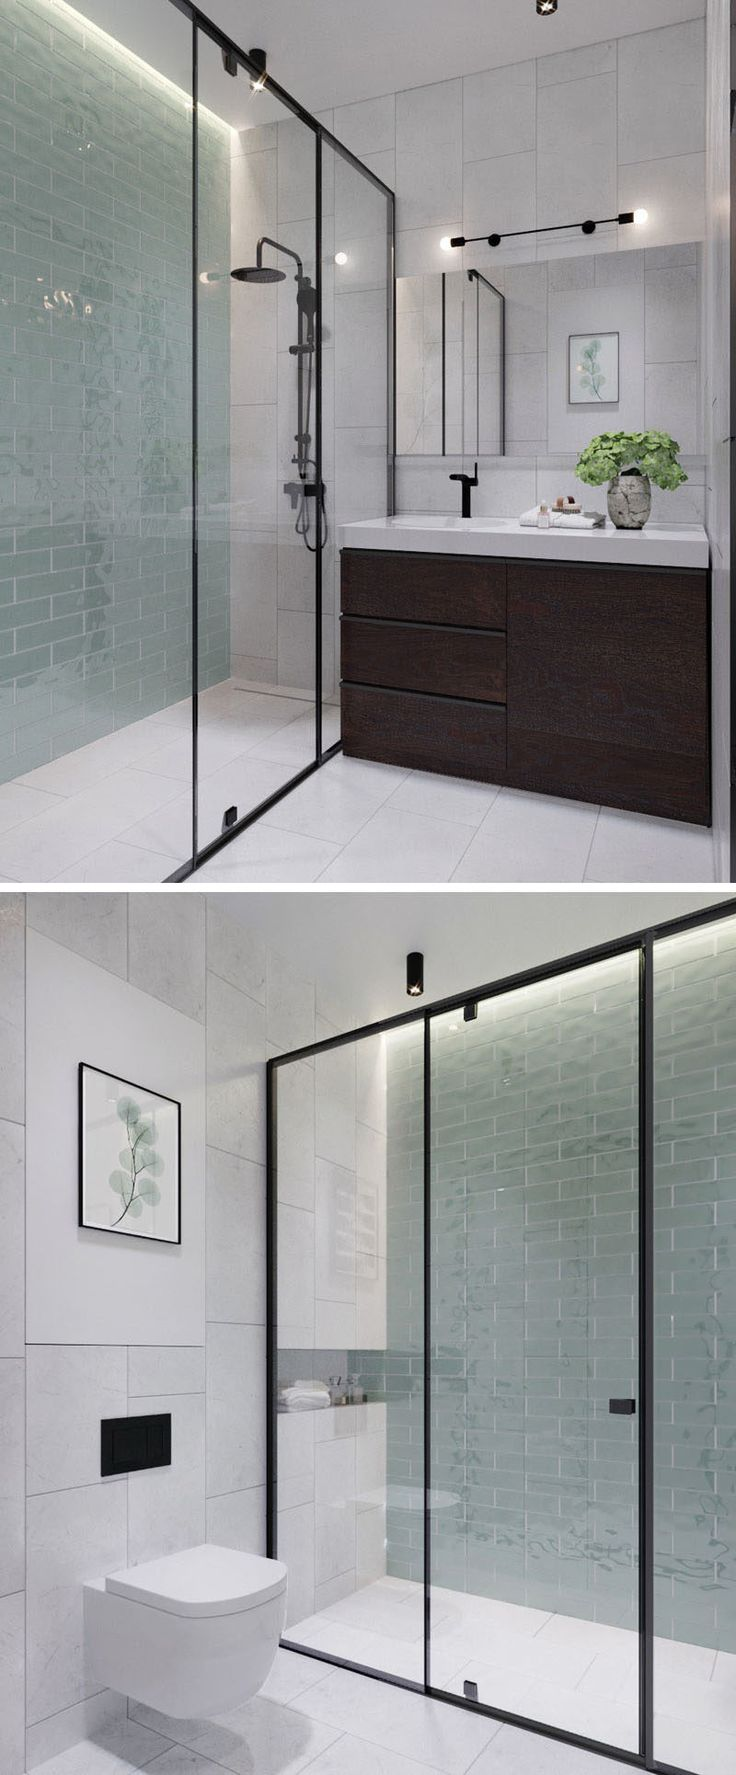 In this modern bathroom, floor-to-ceiling light green tiles add a soft touch of color to the otherwise black, white and wood interior. In the black framed glass enclosed shower, there's hidden lighting to add a calming glow to the bathroom.